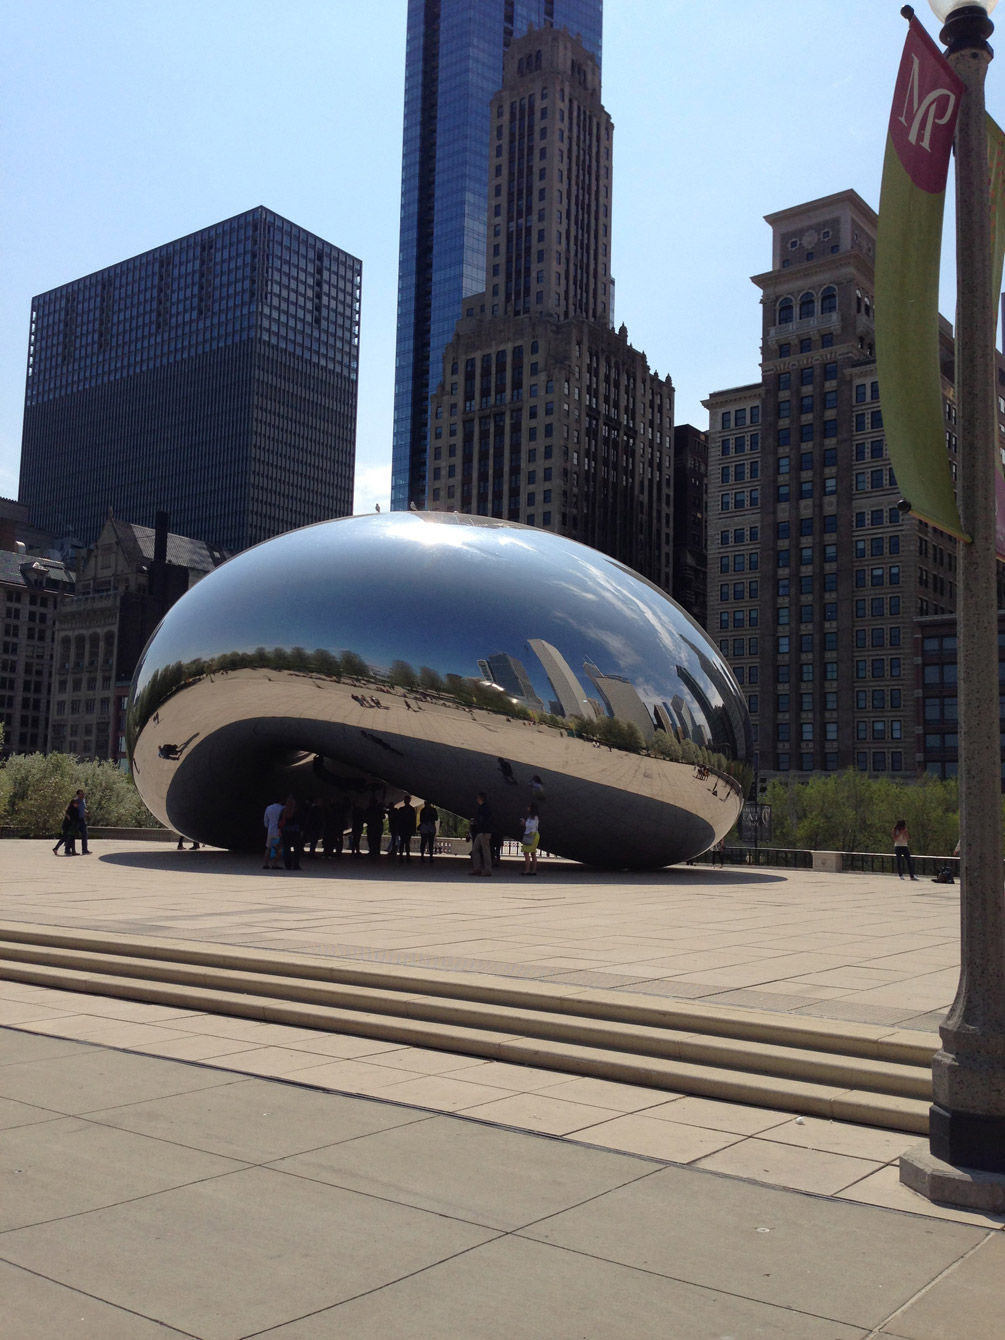 Go stand under the bean, and you'll see multiple reflections of yourself.